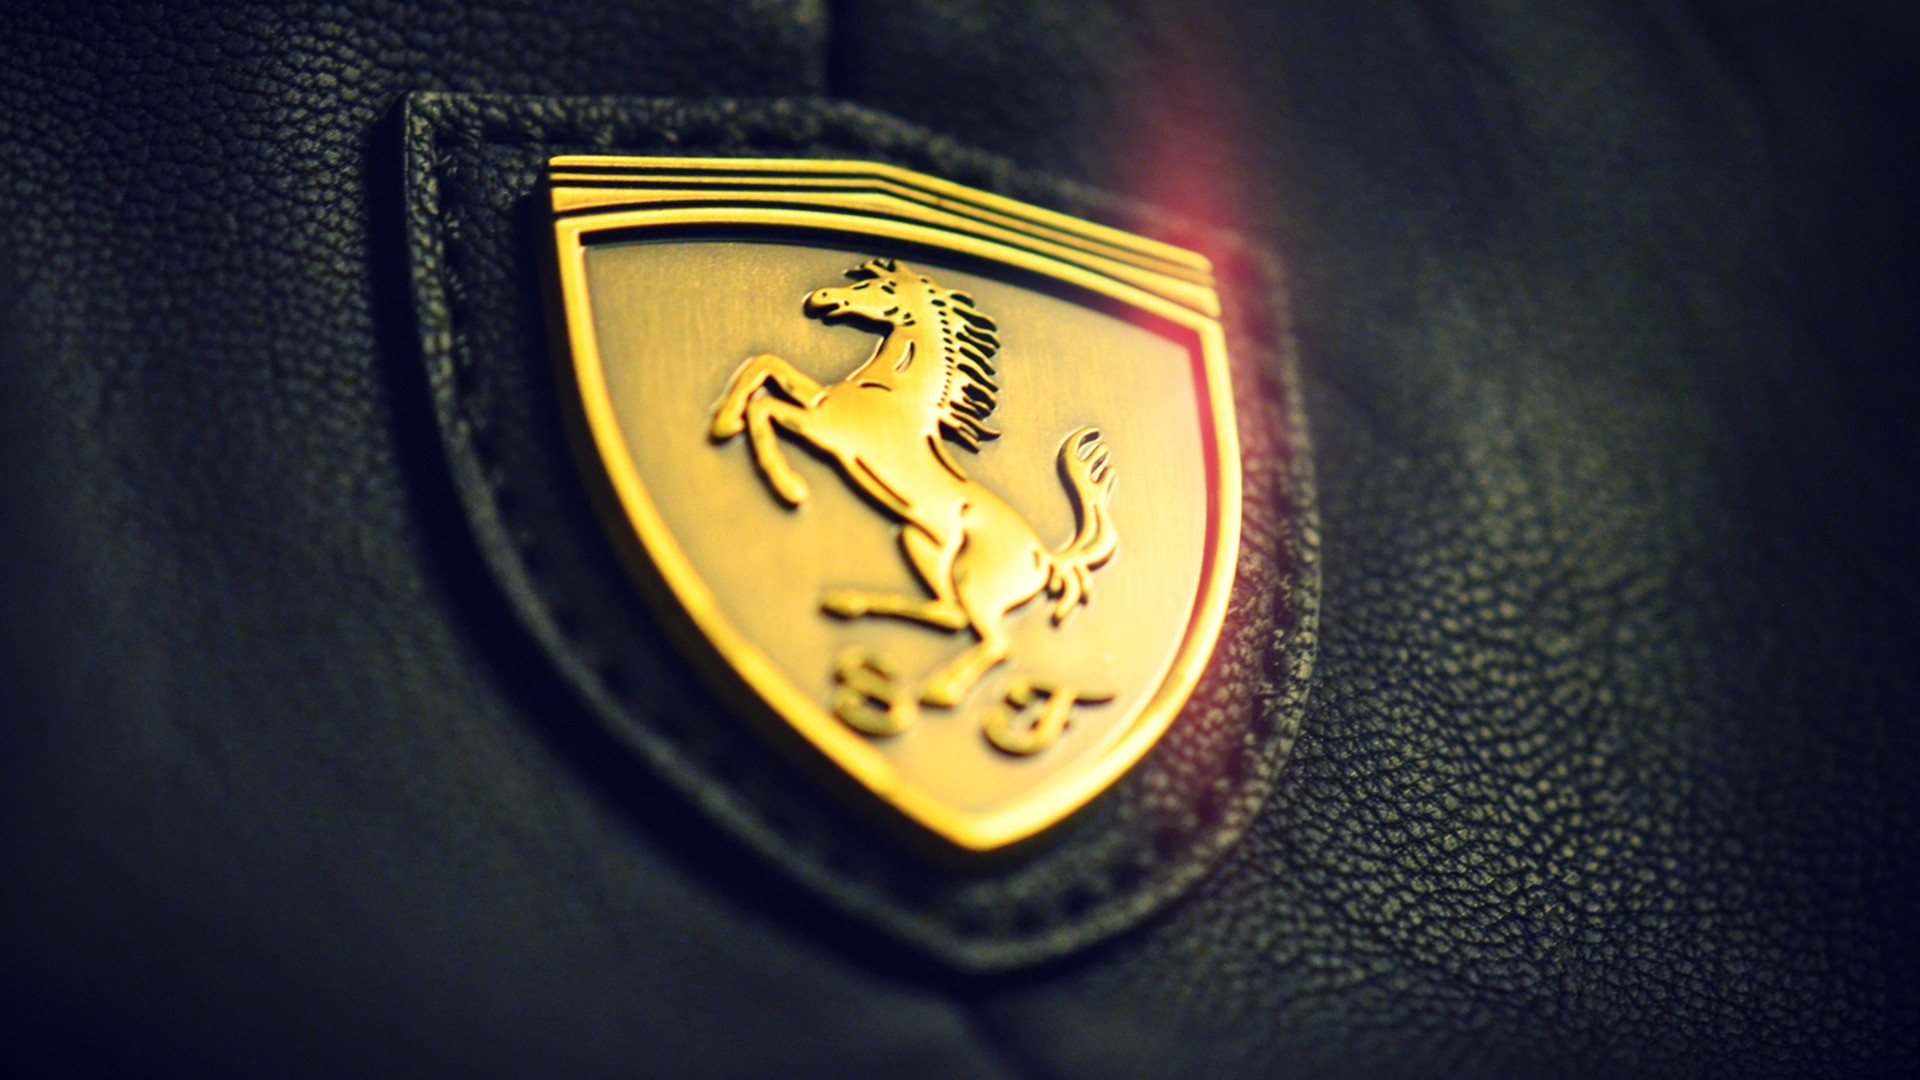 Ferrari-logo-wallpapesr-hd-1080p-black-and-gold-wallpaper-wp3805259